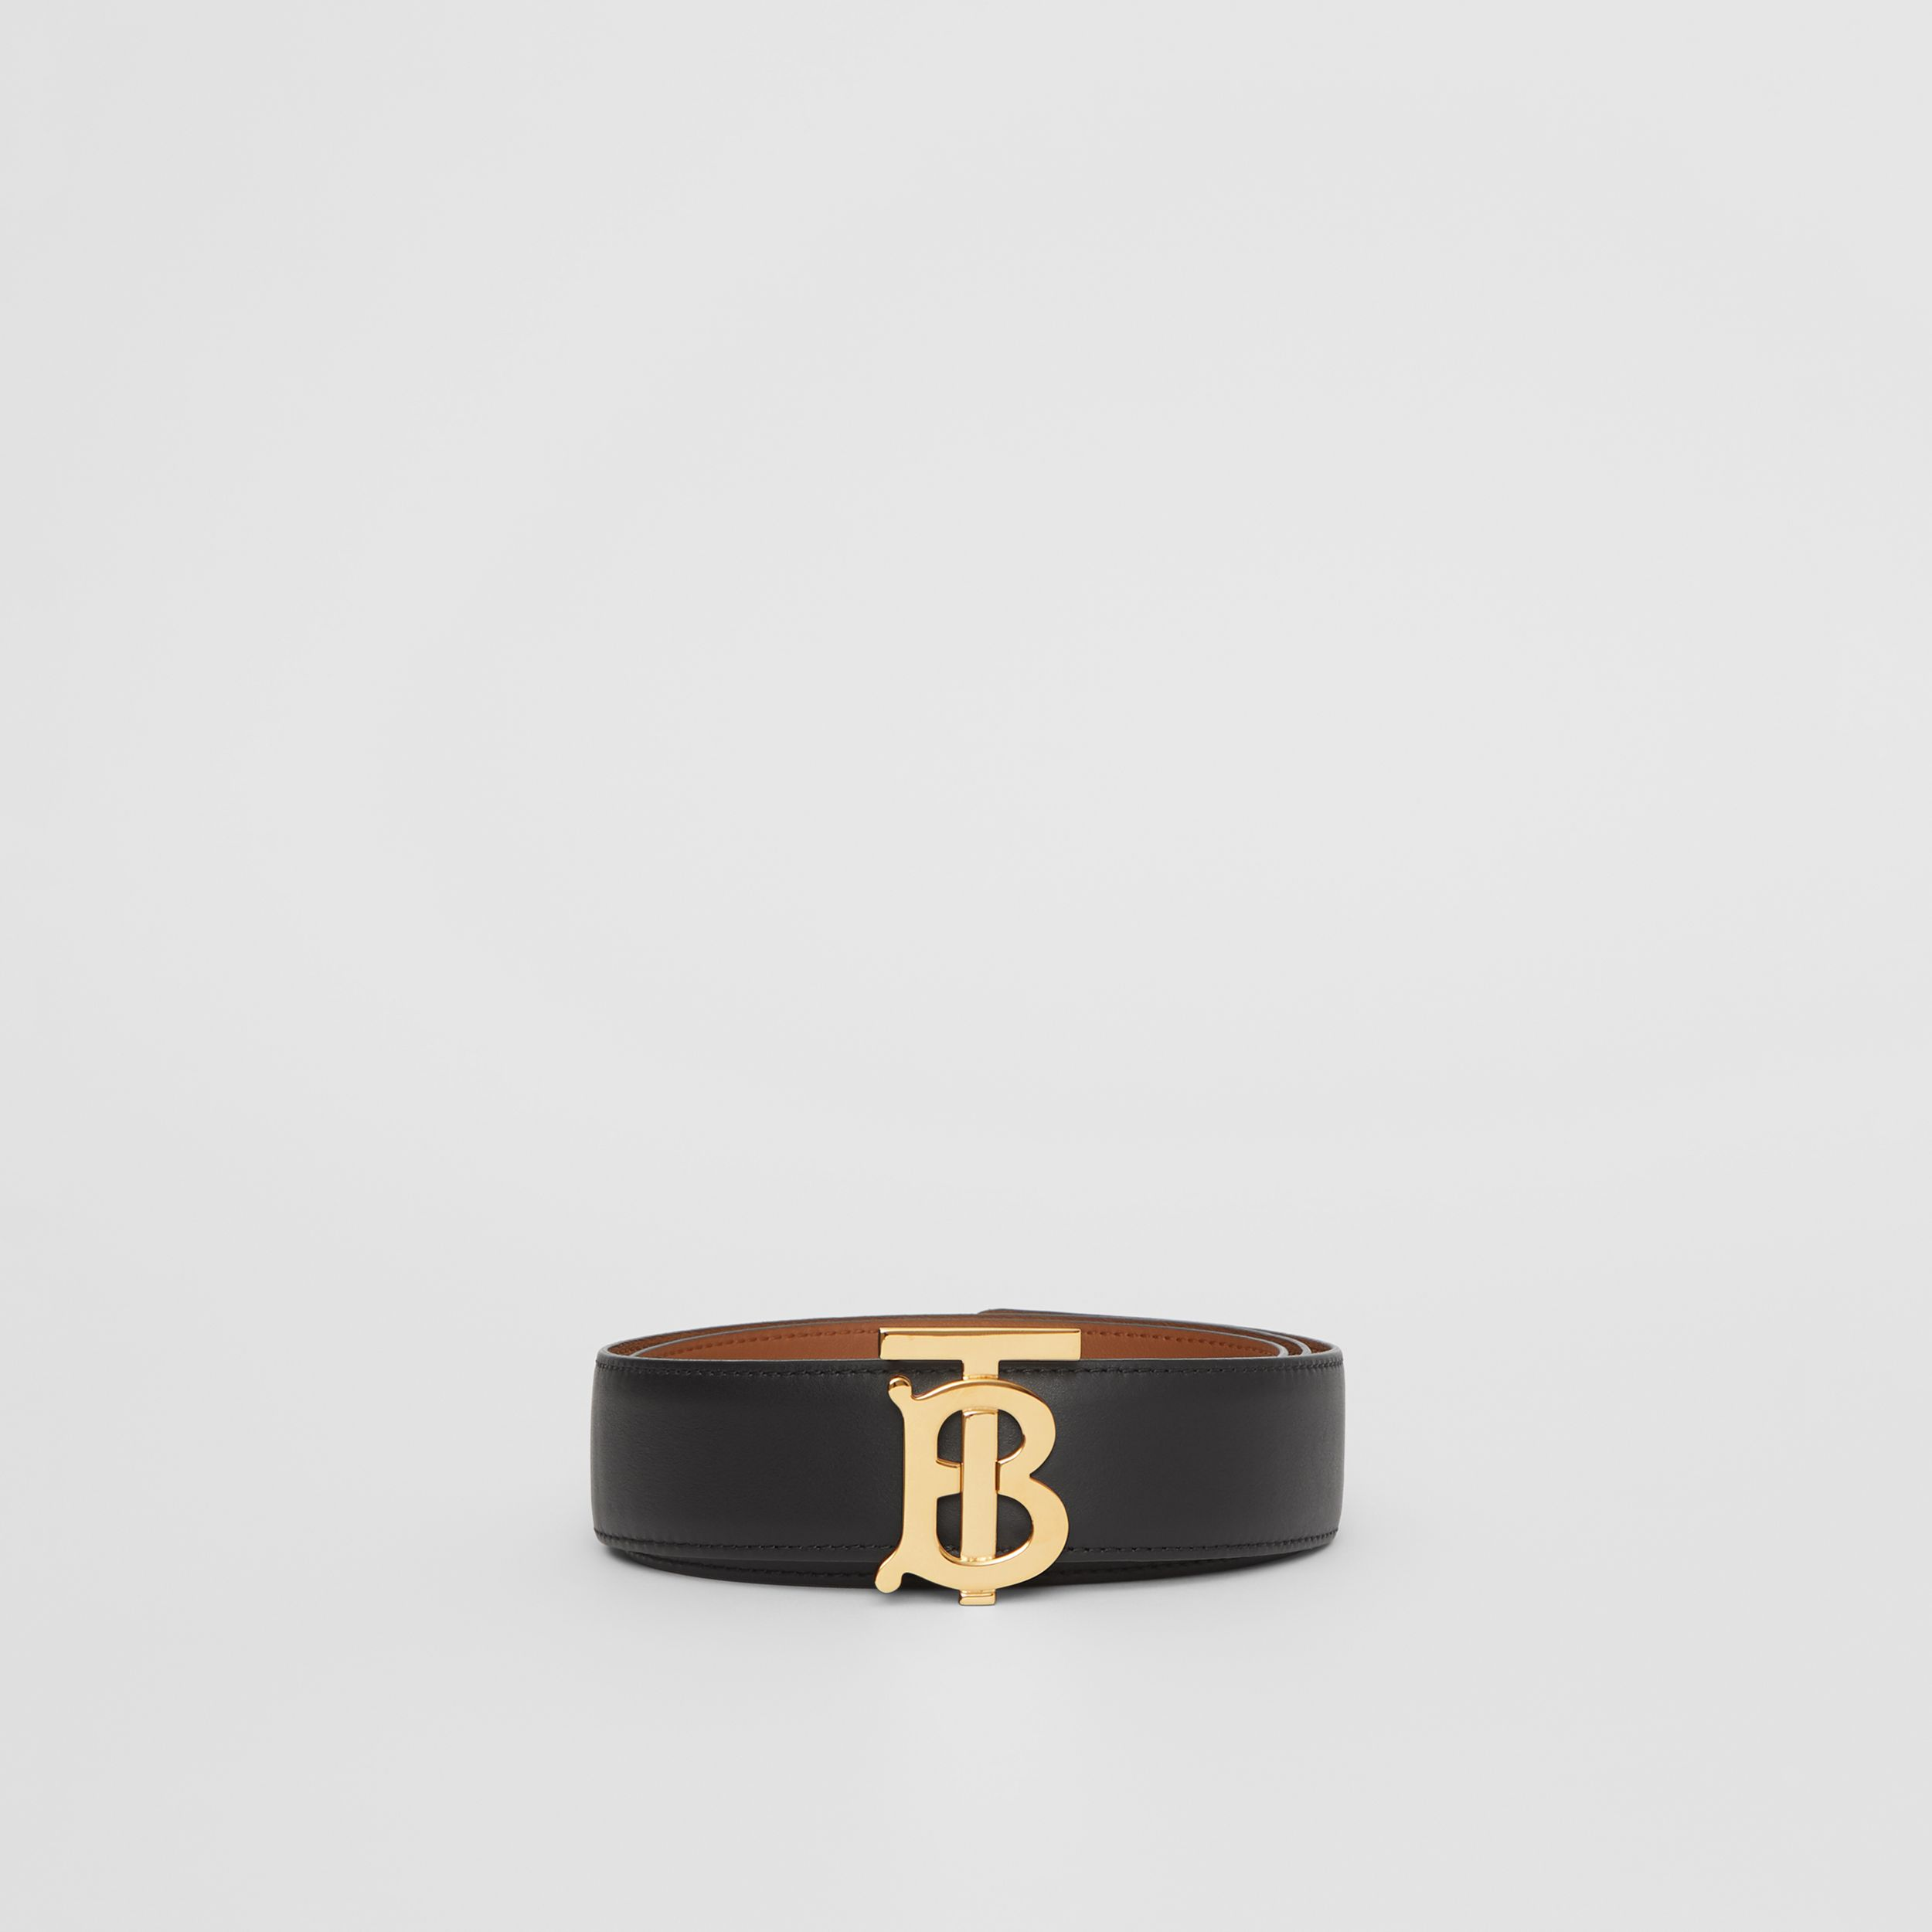 Reversible Monogram Motif Leather Belt in Black/malt Brown - Women | Burberry Hong Kong S.A.R. - 4